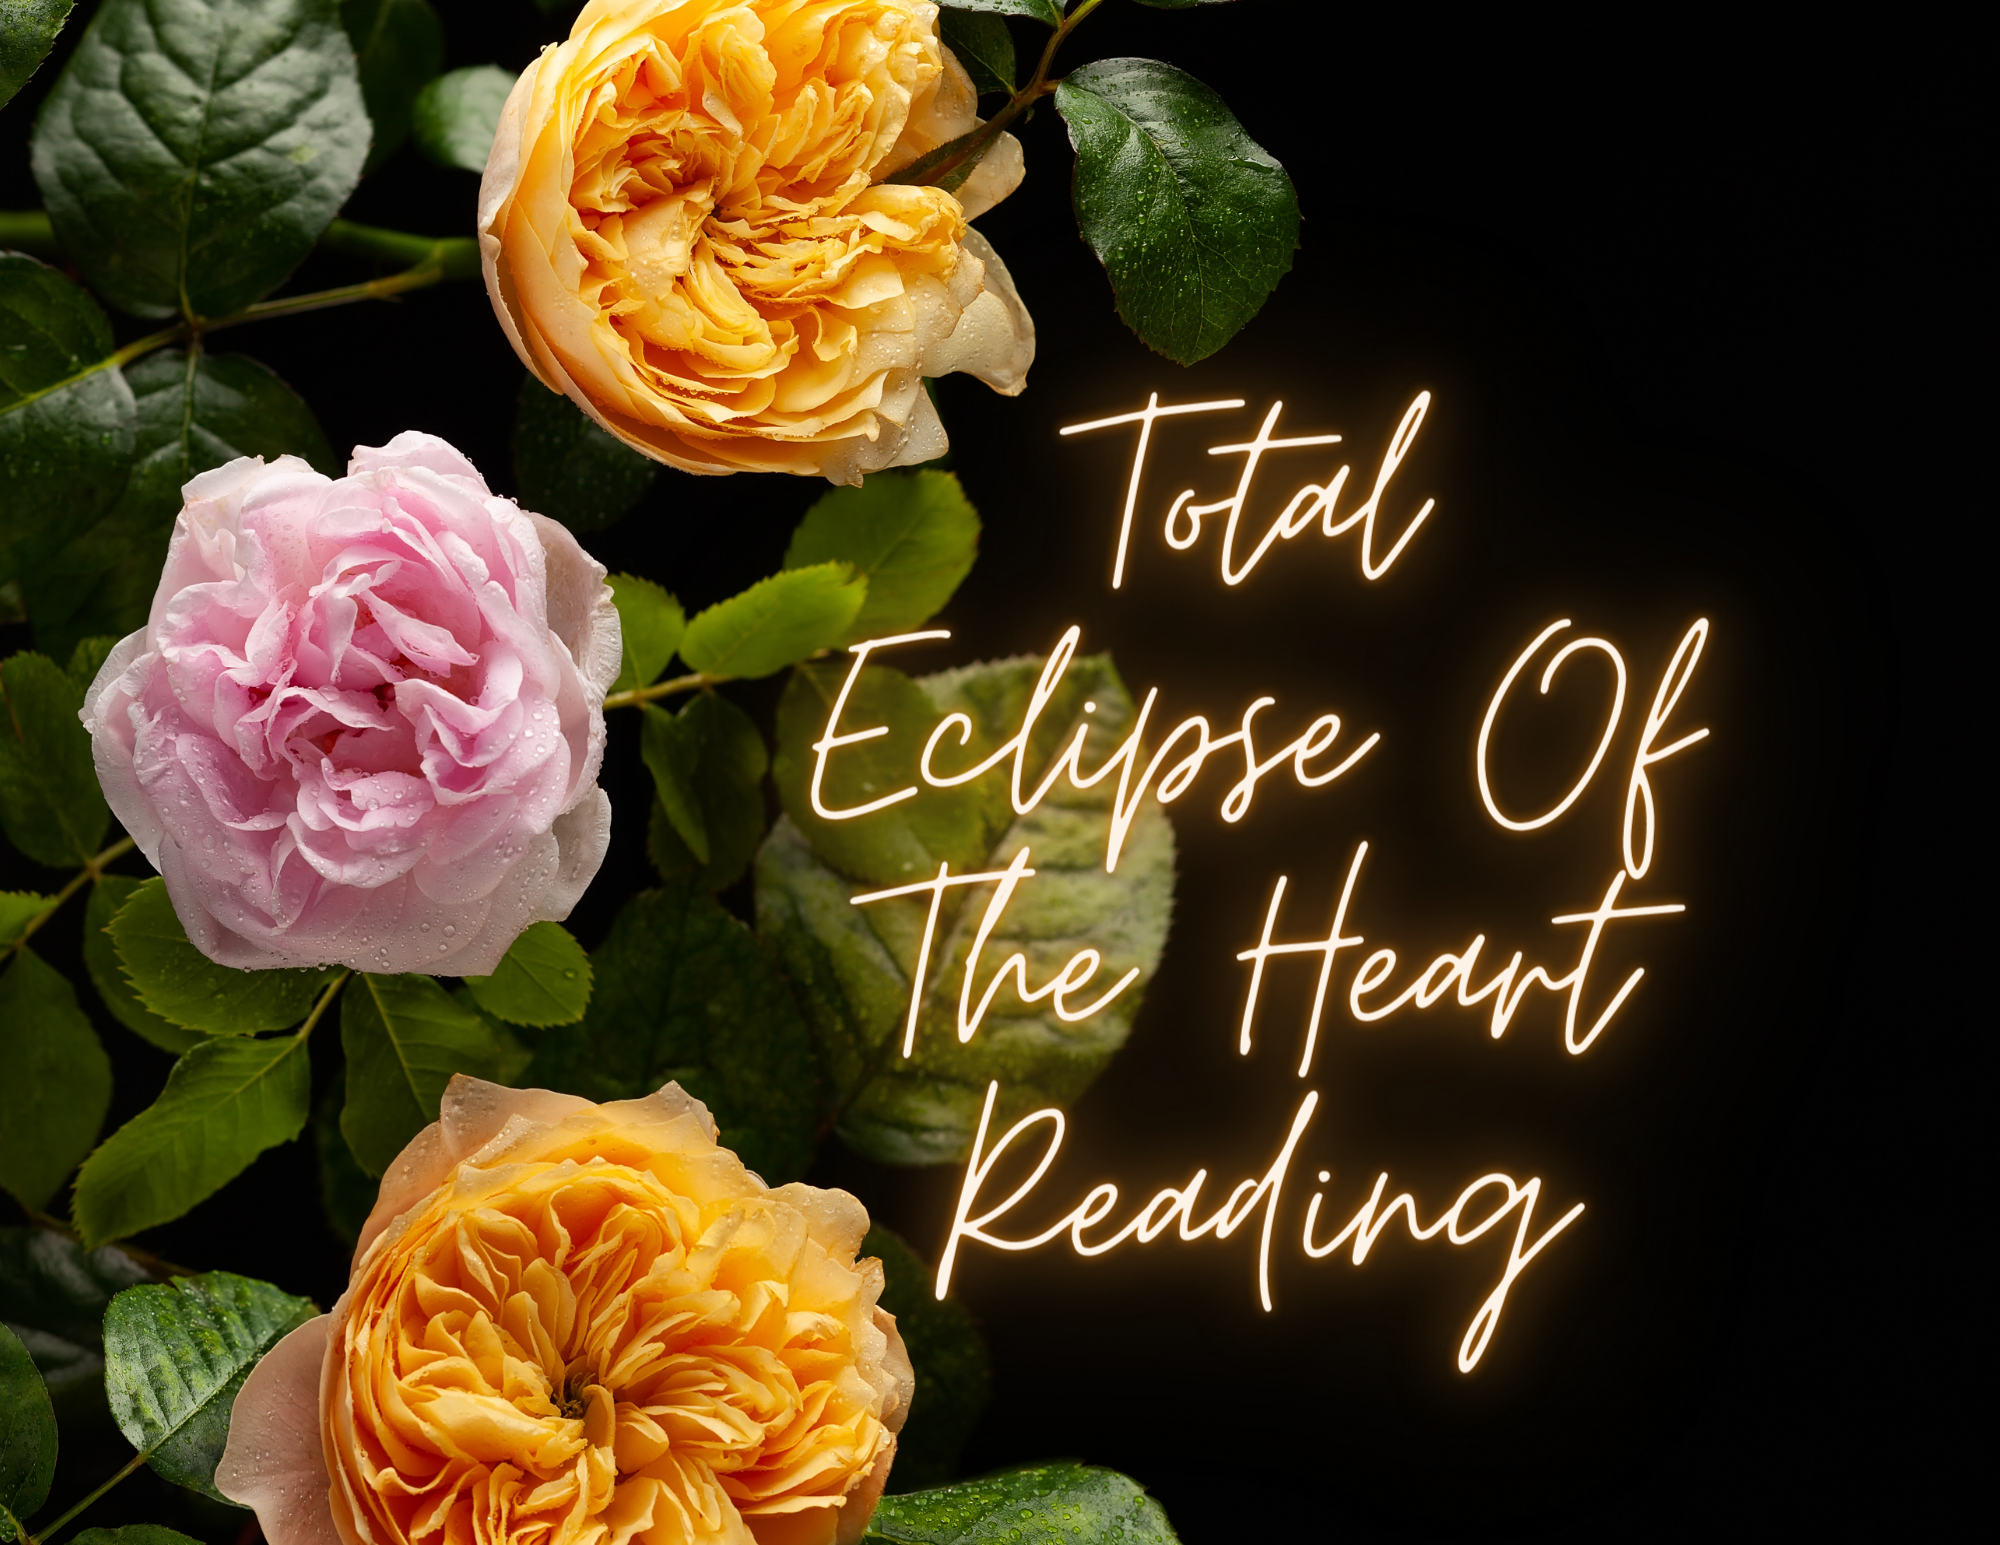 Total Eclipse Of The Heart Reading